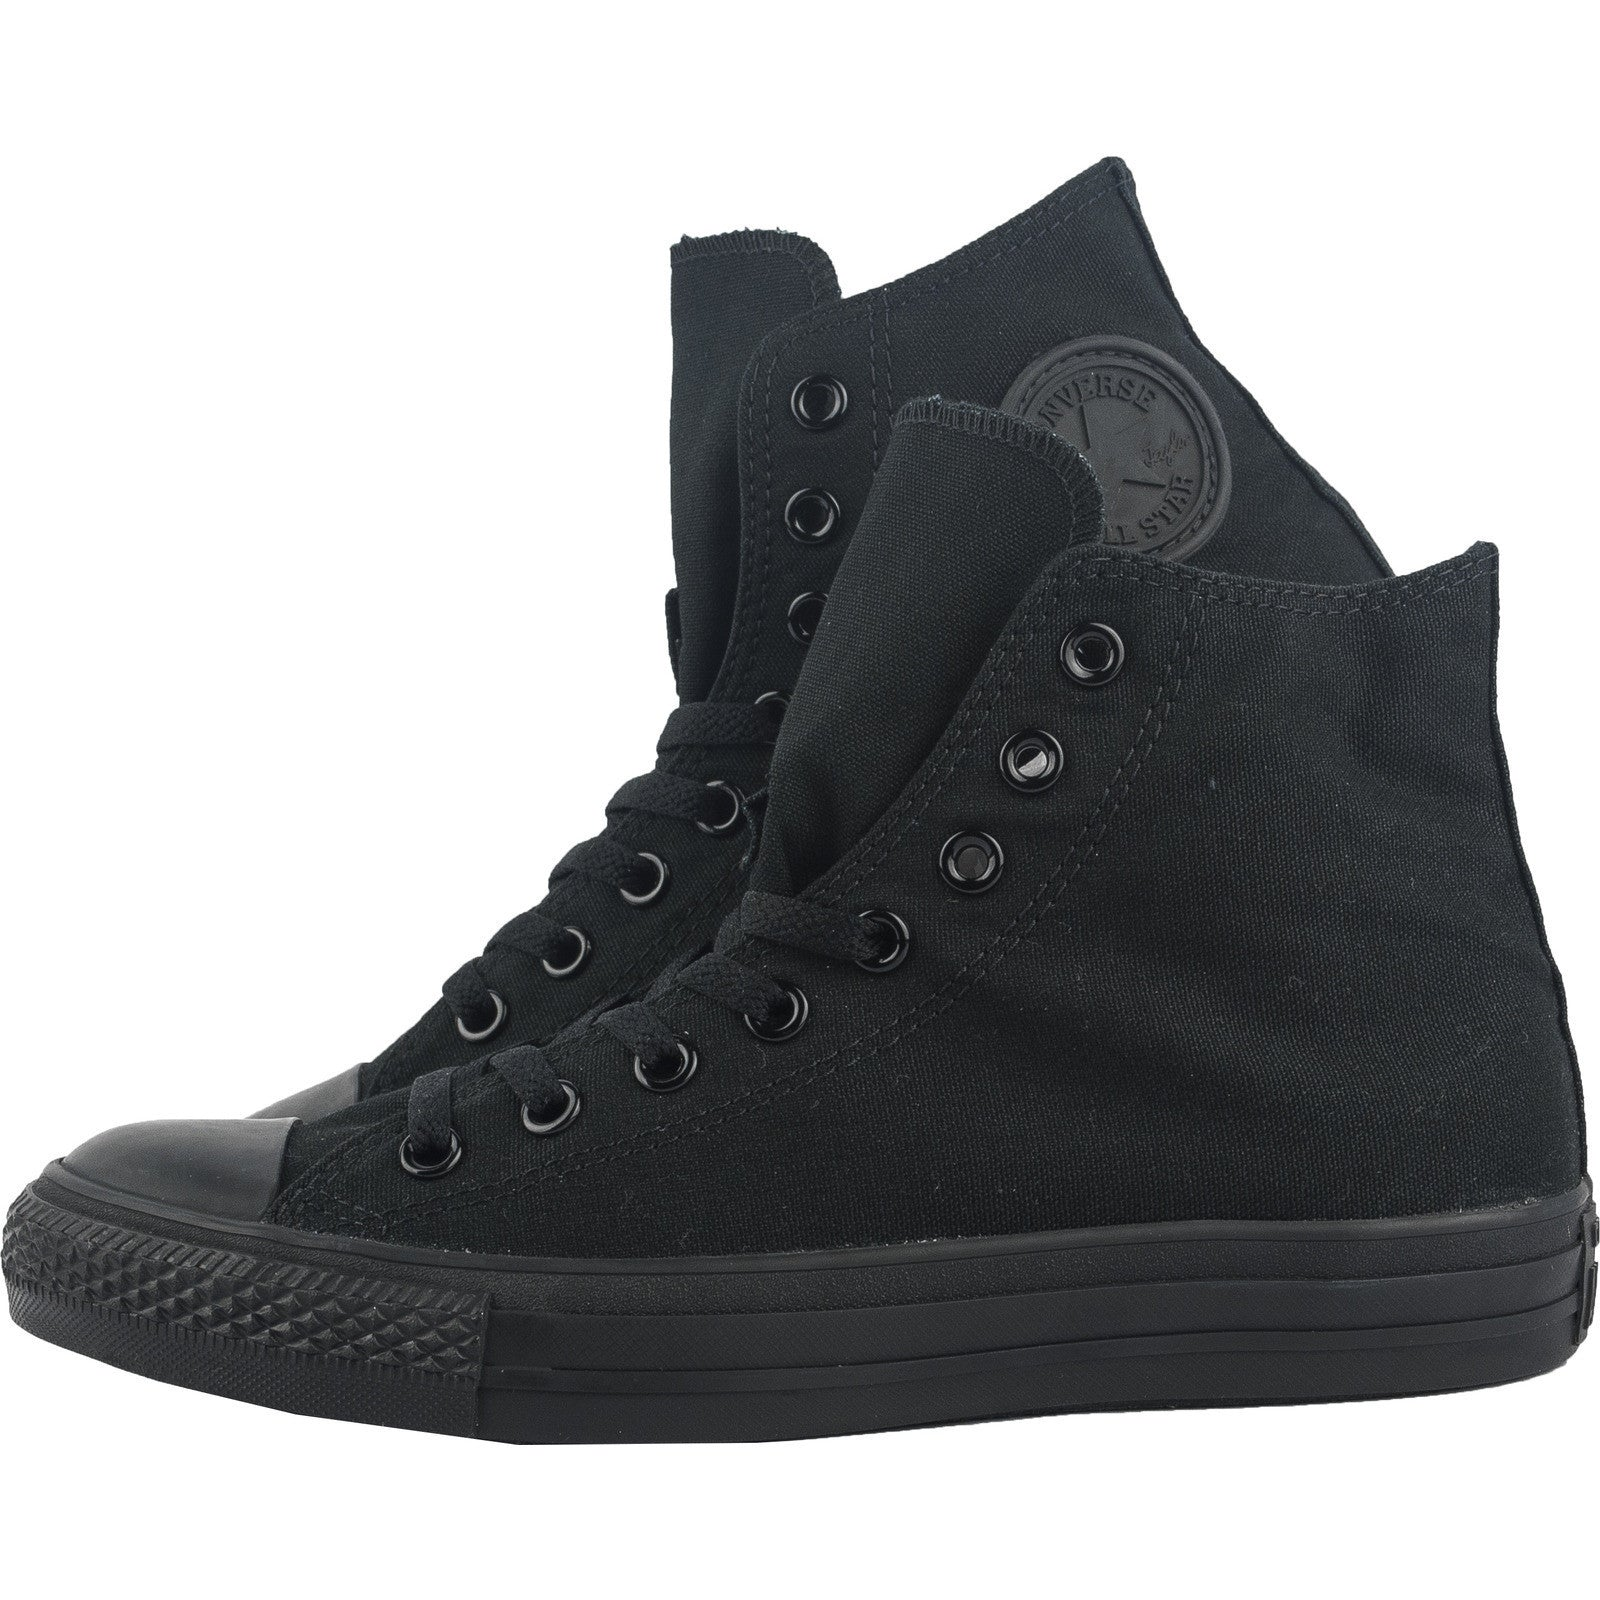 Converse Classic Chuck Taylor All Star All Black Monochrome HI High M3310C  Trainer Sneaker NEW ... 888d48ac4